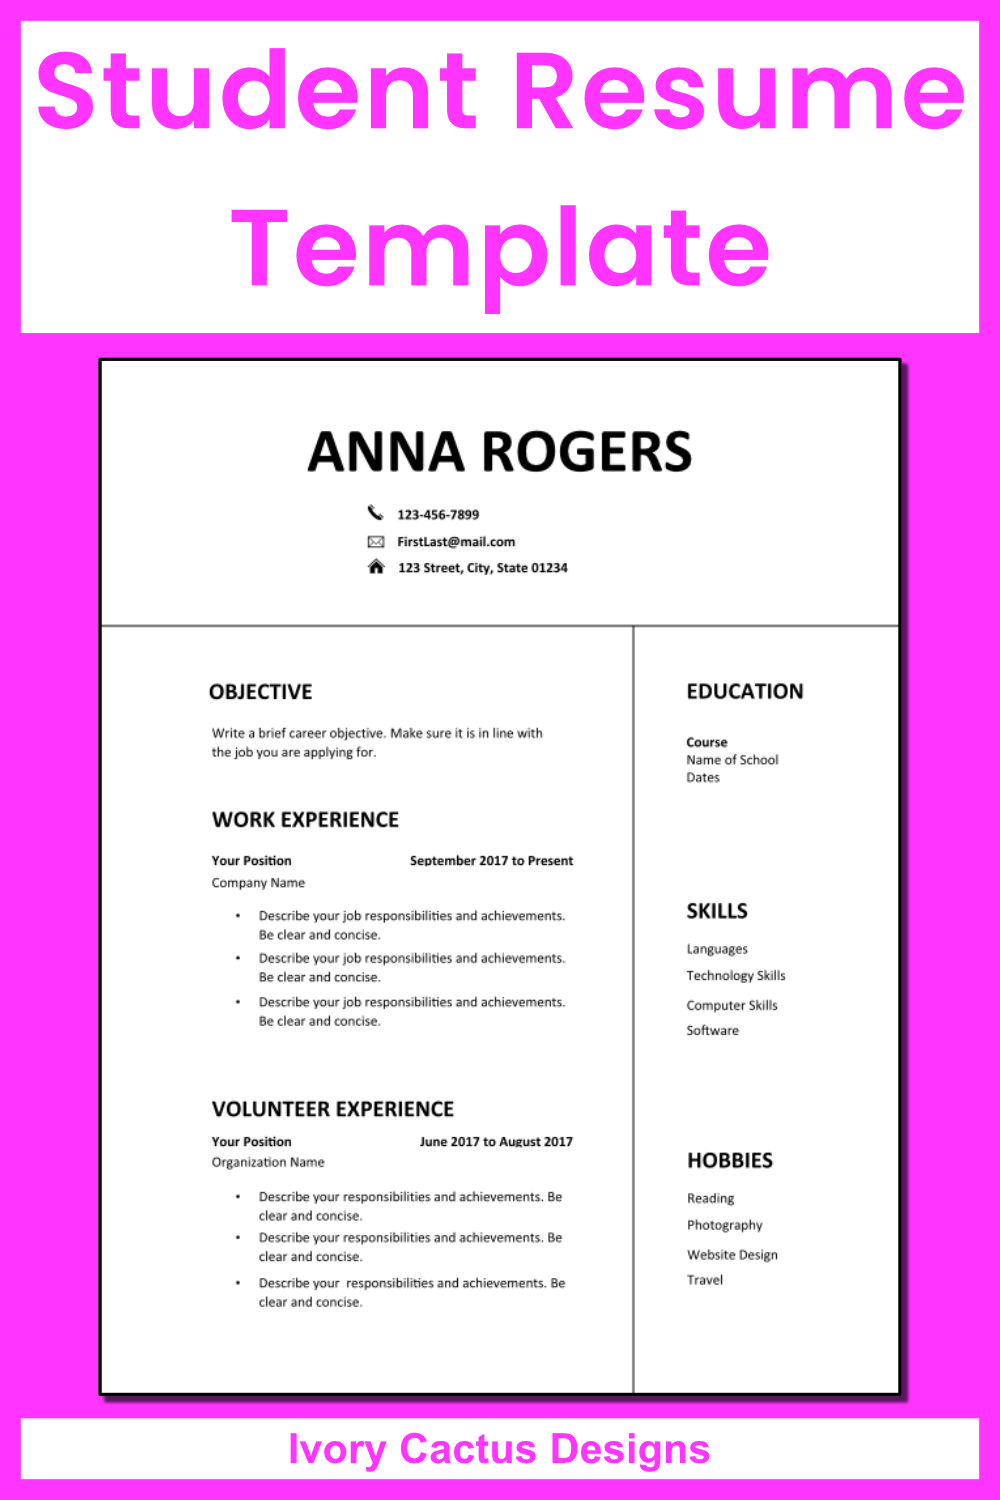 Resume Template Word First Job Cv Template One Page Resume High School Student Teenagers Professional Clean Modern Simple Anna Student Resume Template Resume Template Word Resume Template Student resume template microsoft word